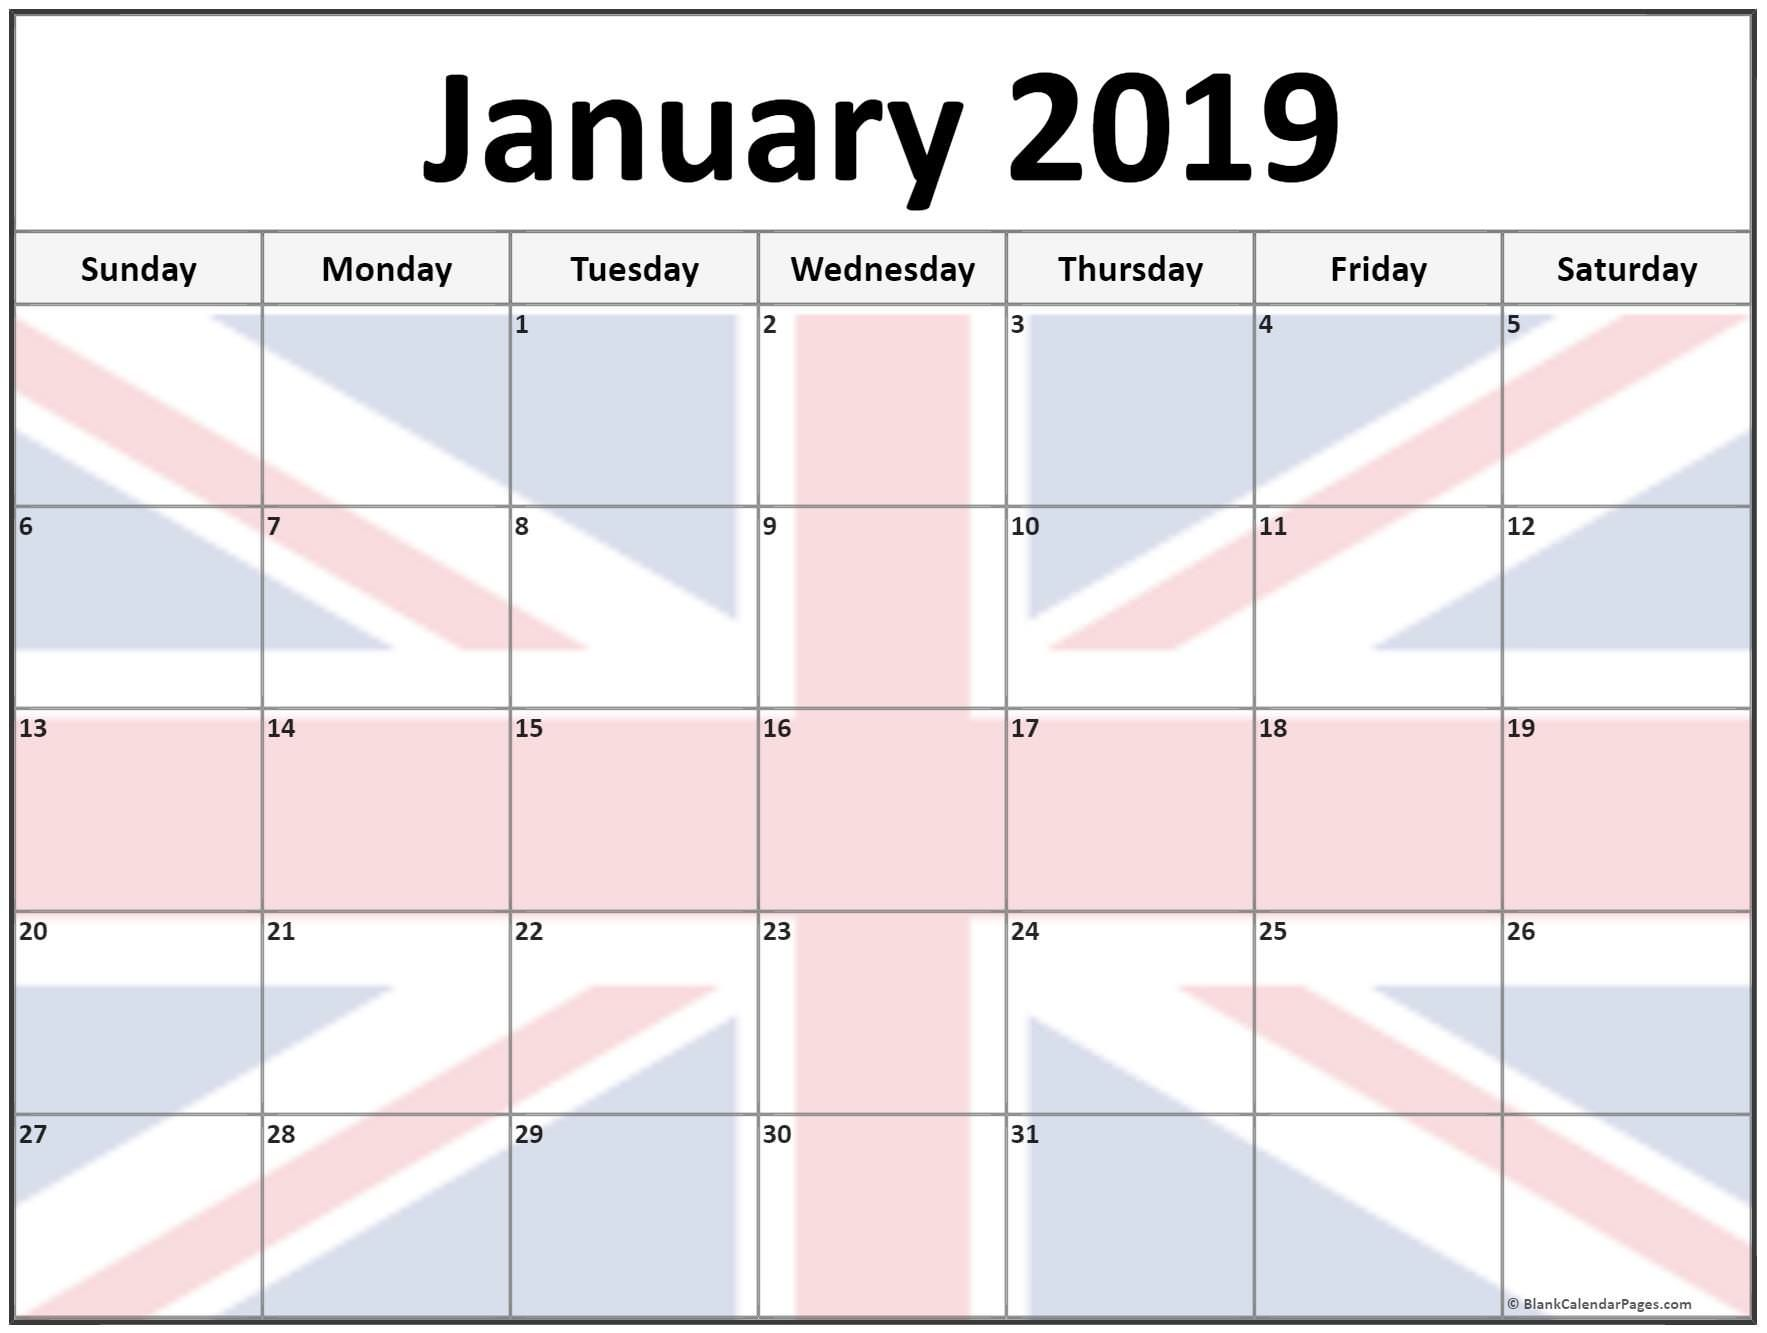 January 2019 Calendar Uk With Holidays Printable With Images